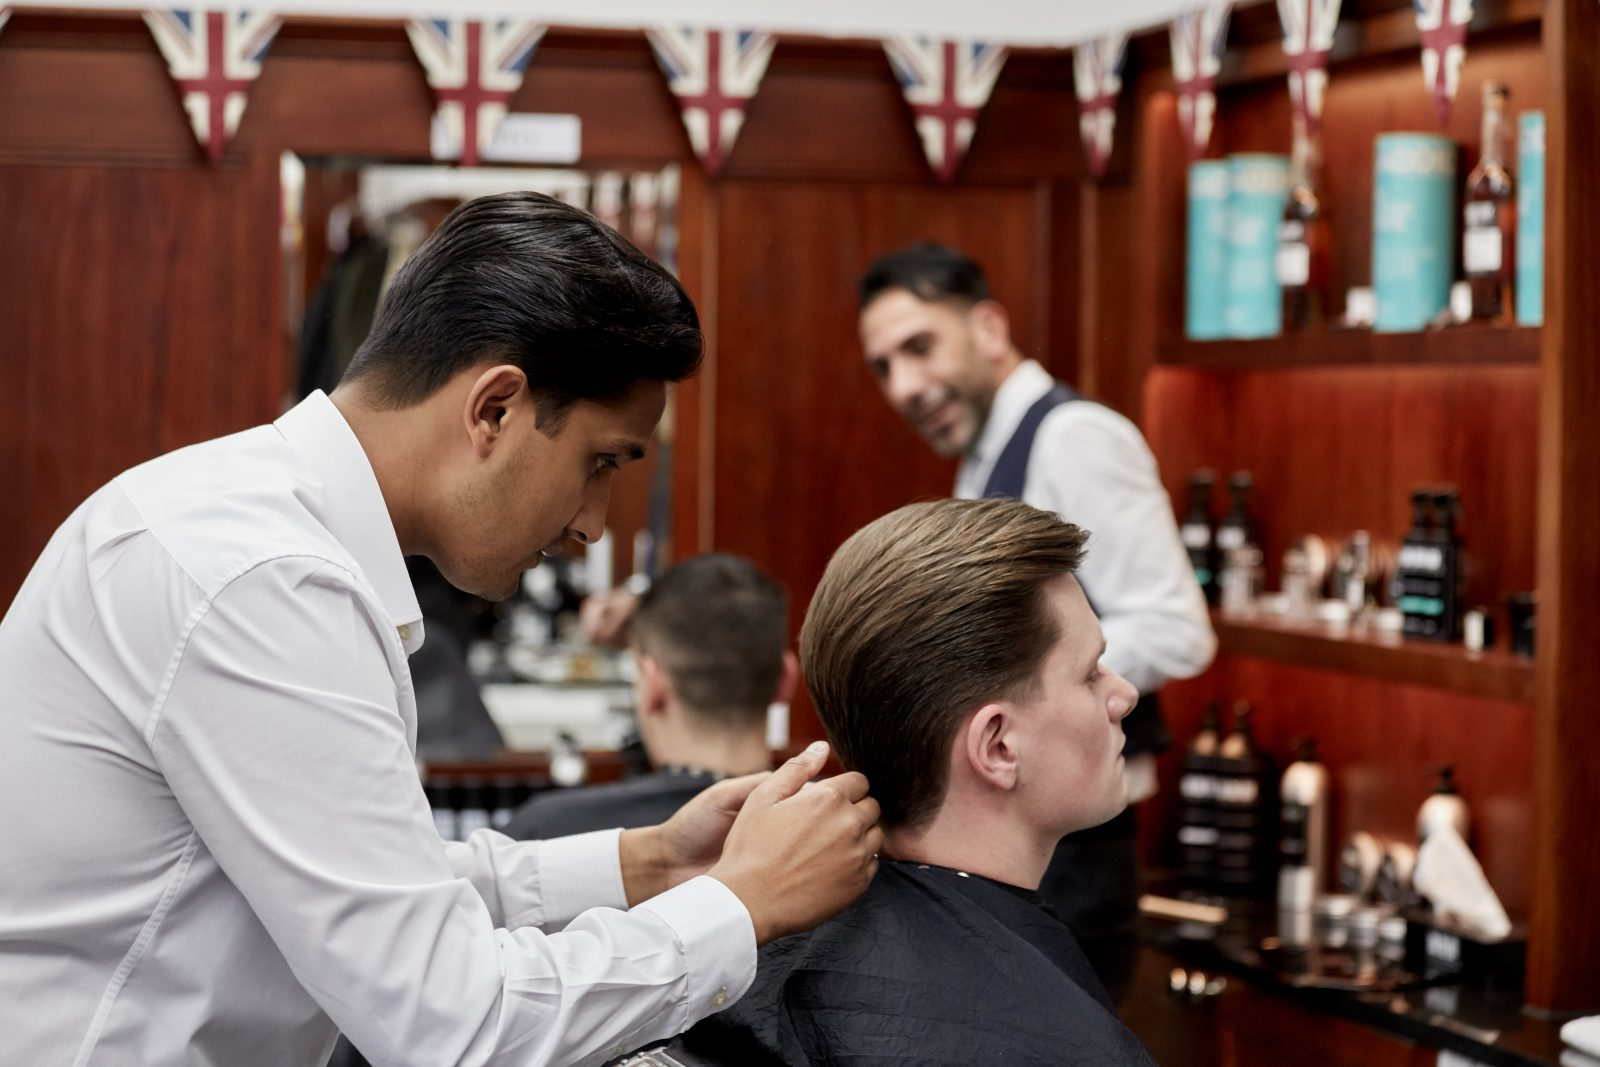 Classic Men's Hairstyles & Haircuts   Curly & Straight Hair Style Men